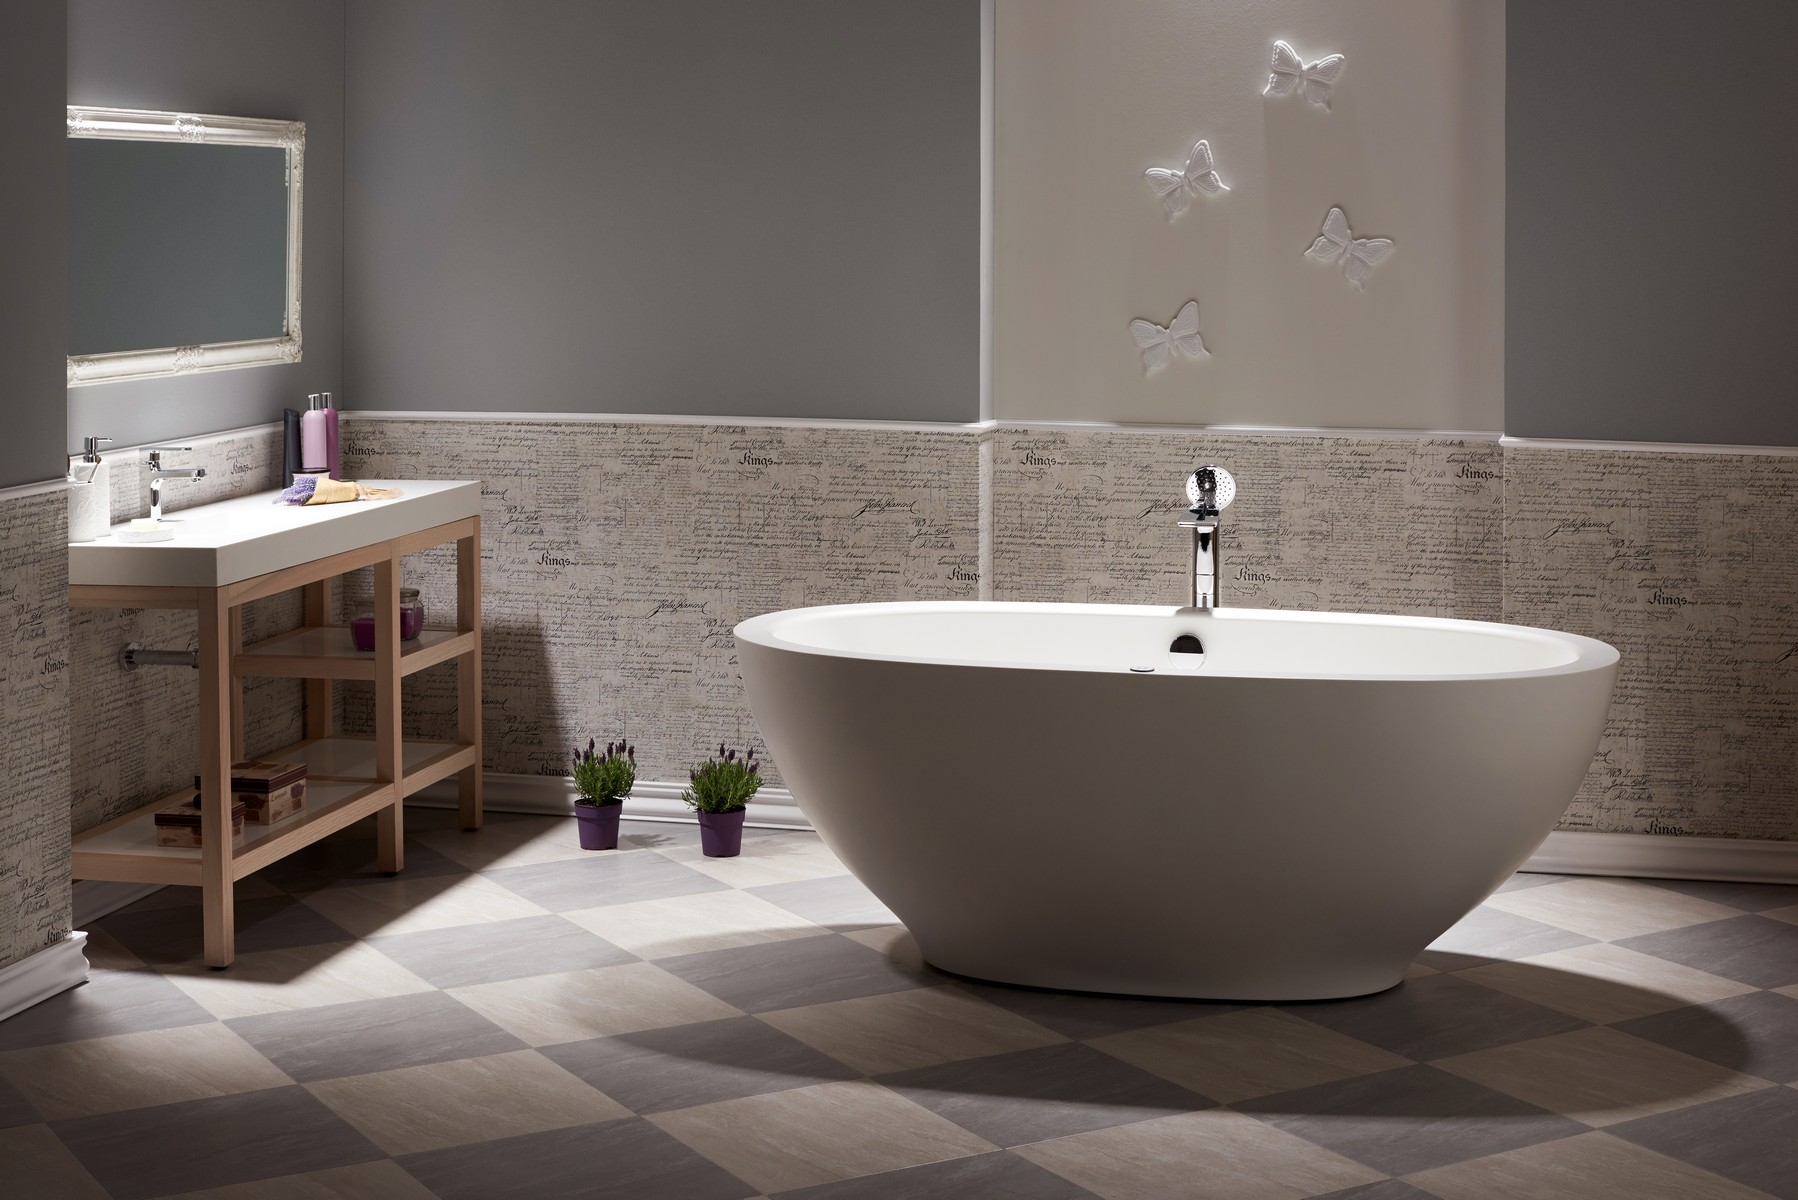 The very first freestanding stone jetted bathtub for Freestanding tub vs built in